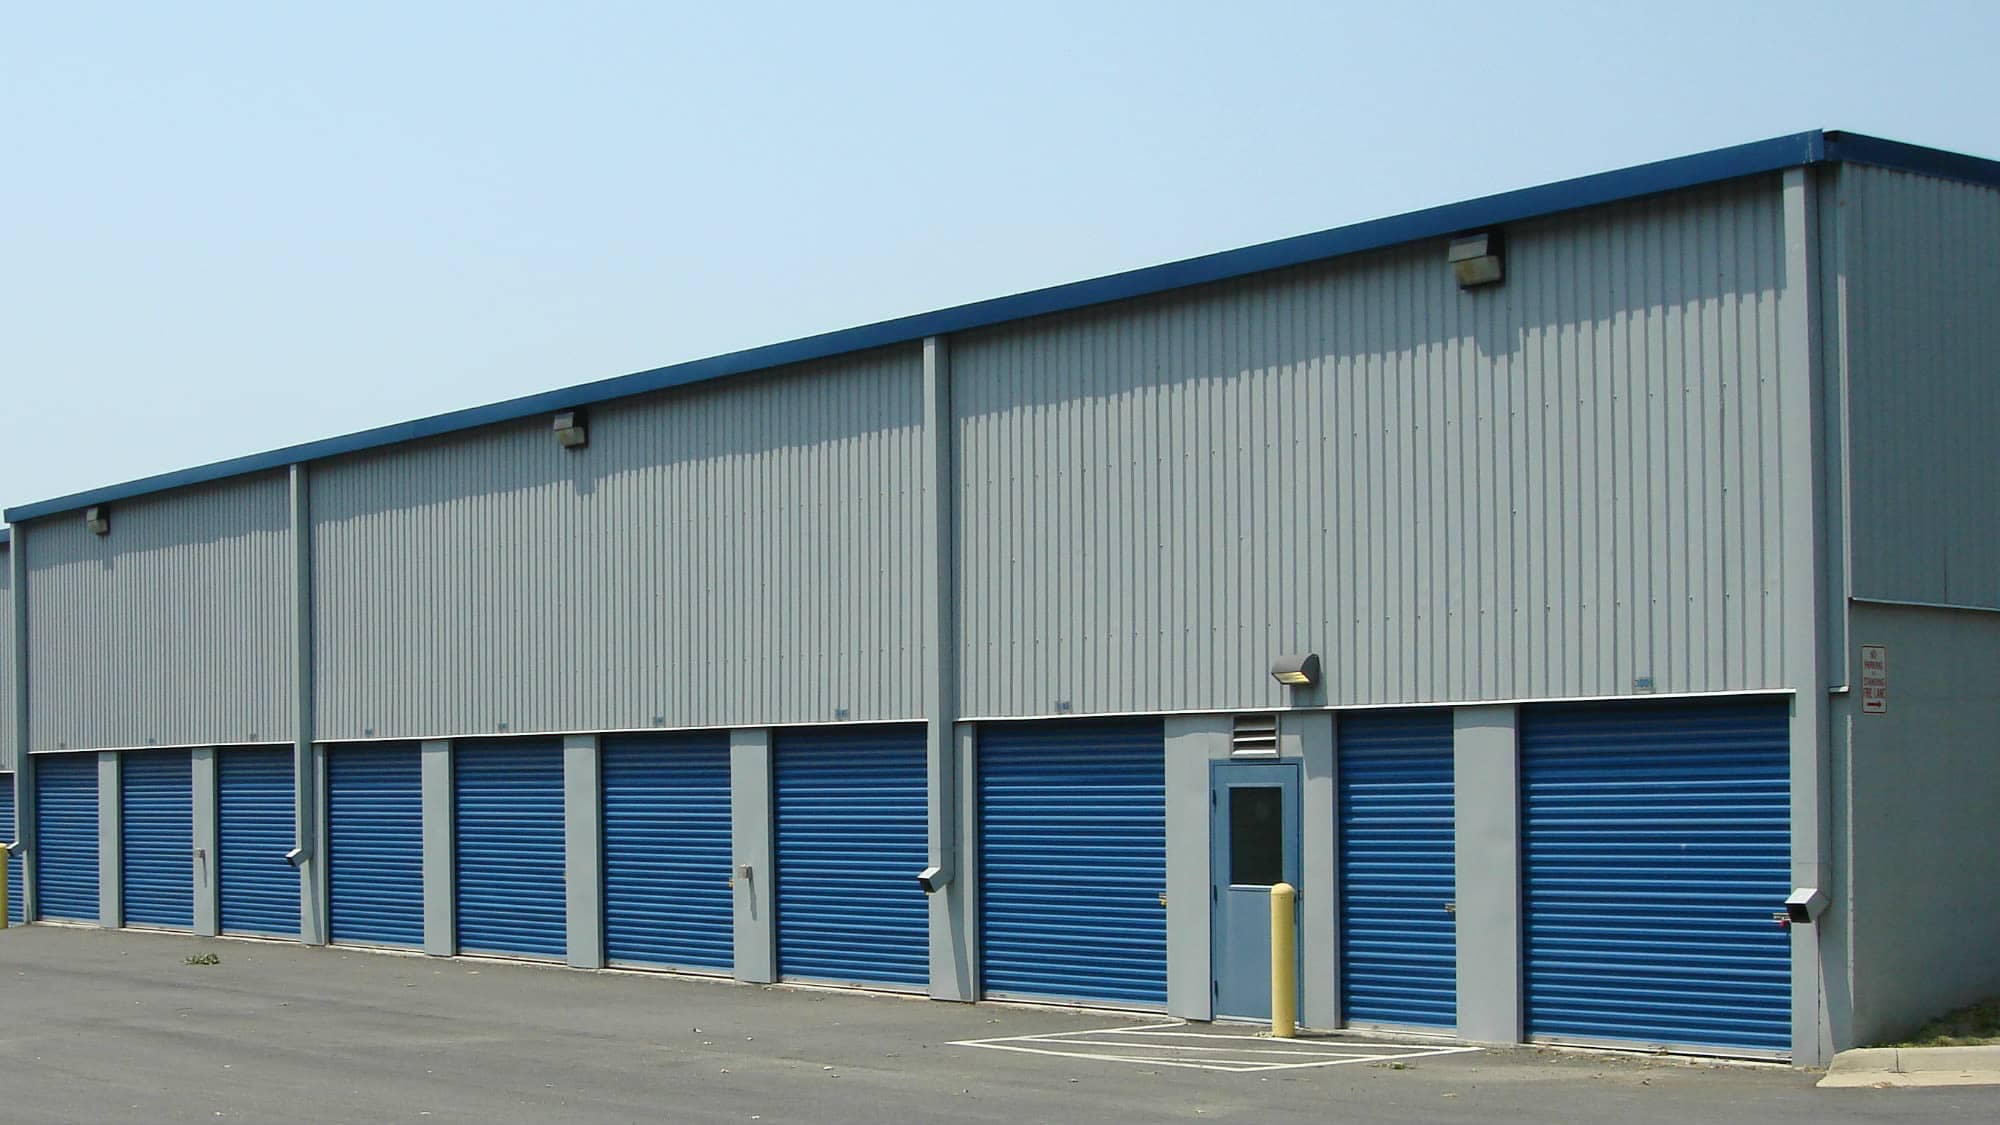 Drive-up units at Self Storage Plus in Sterling, VA